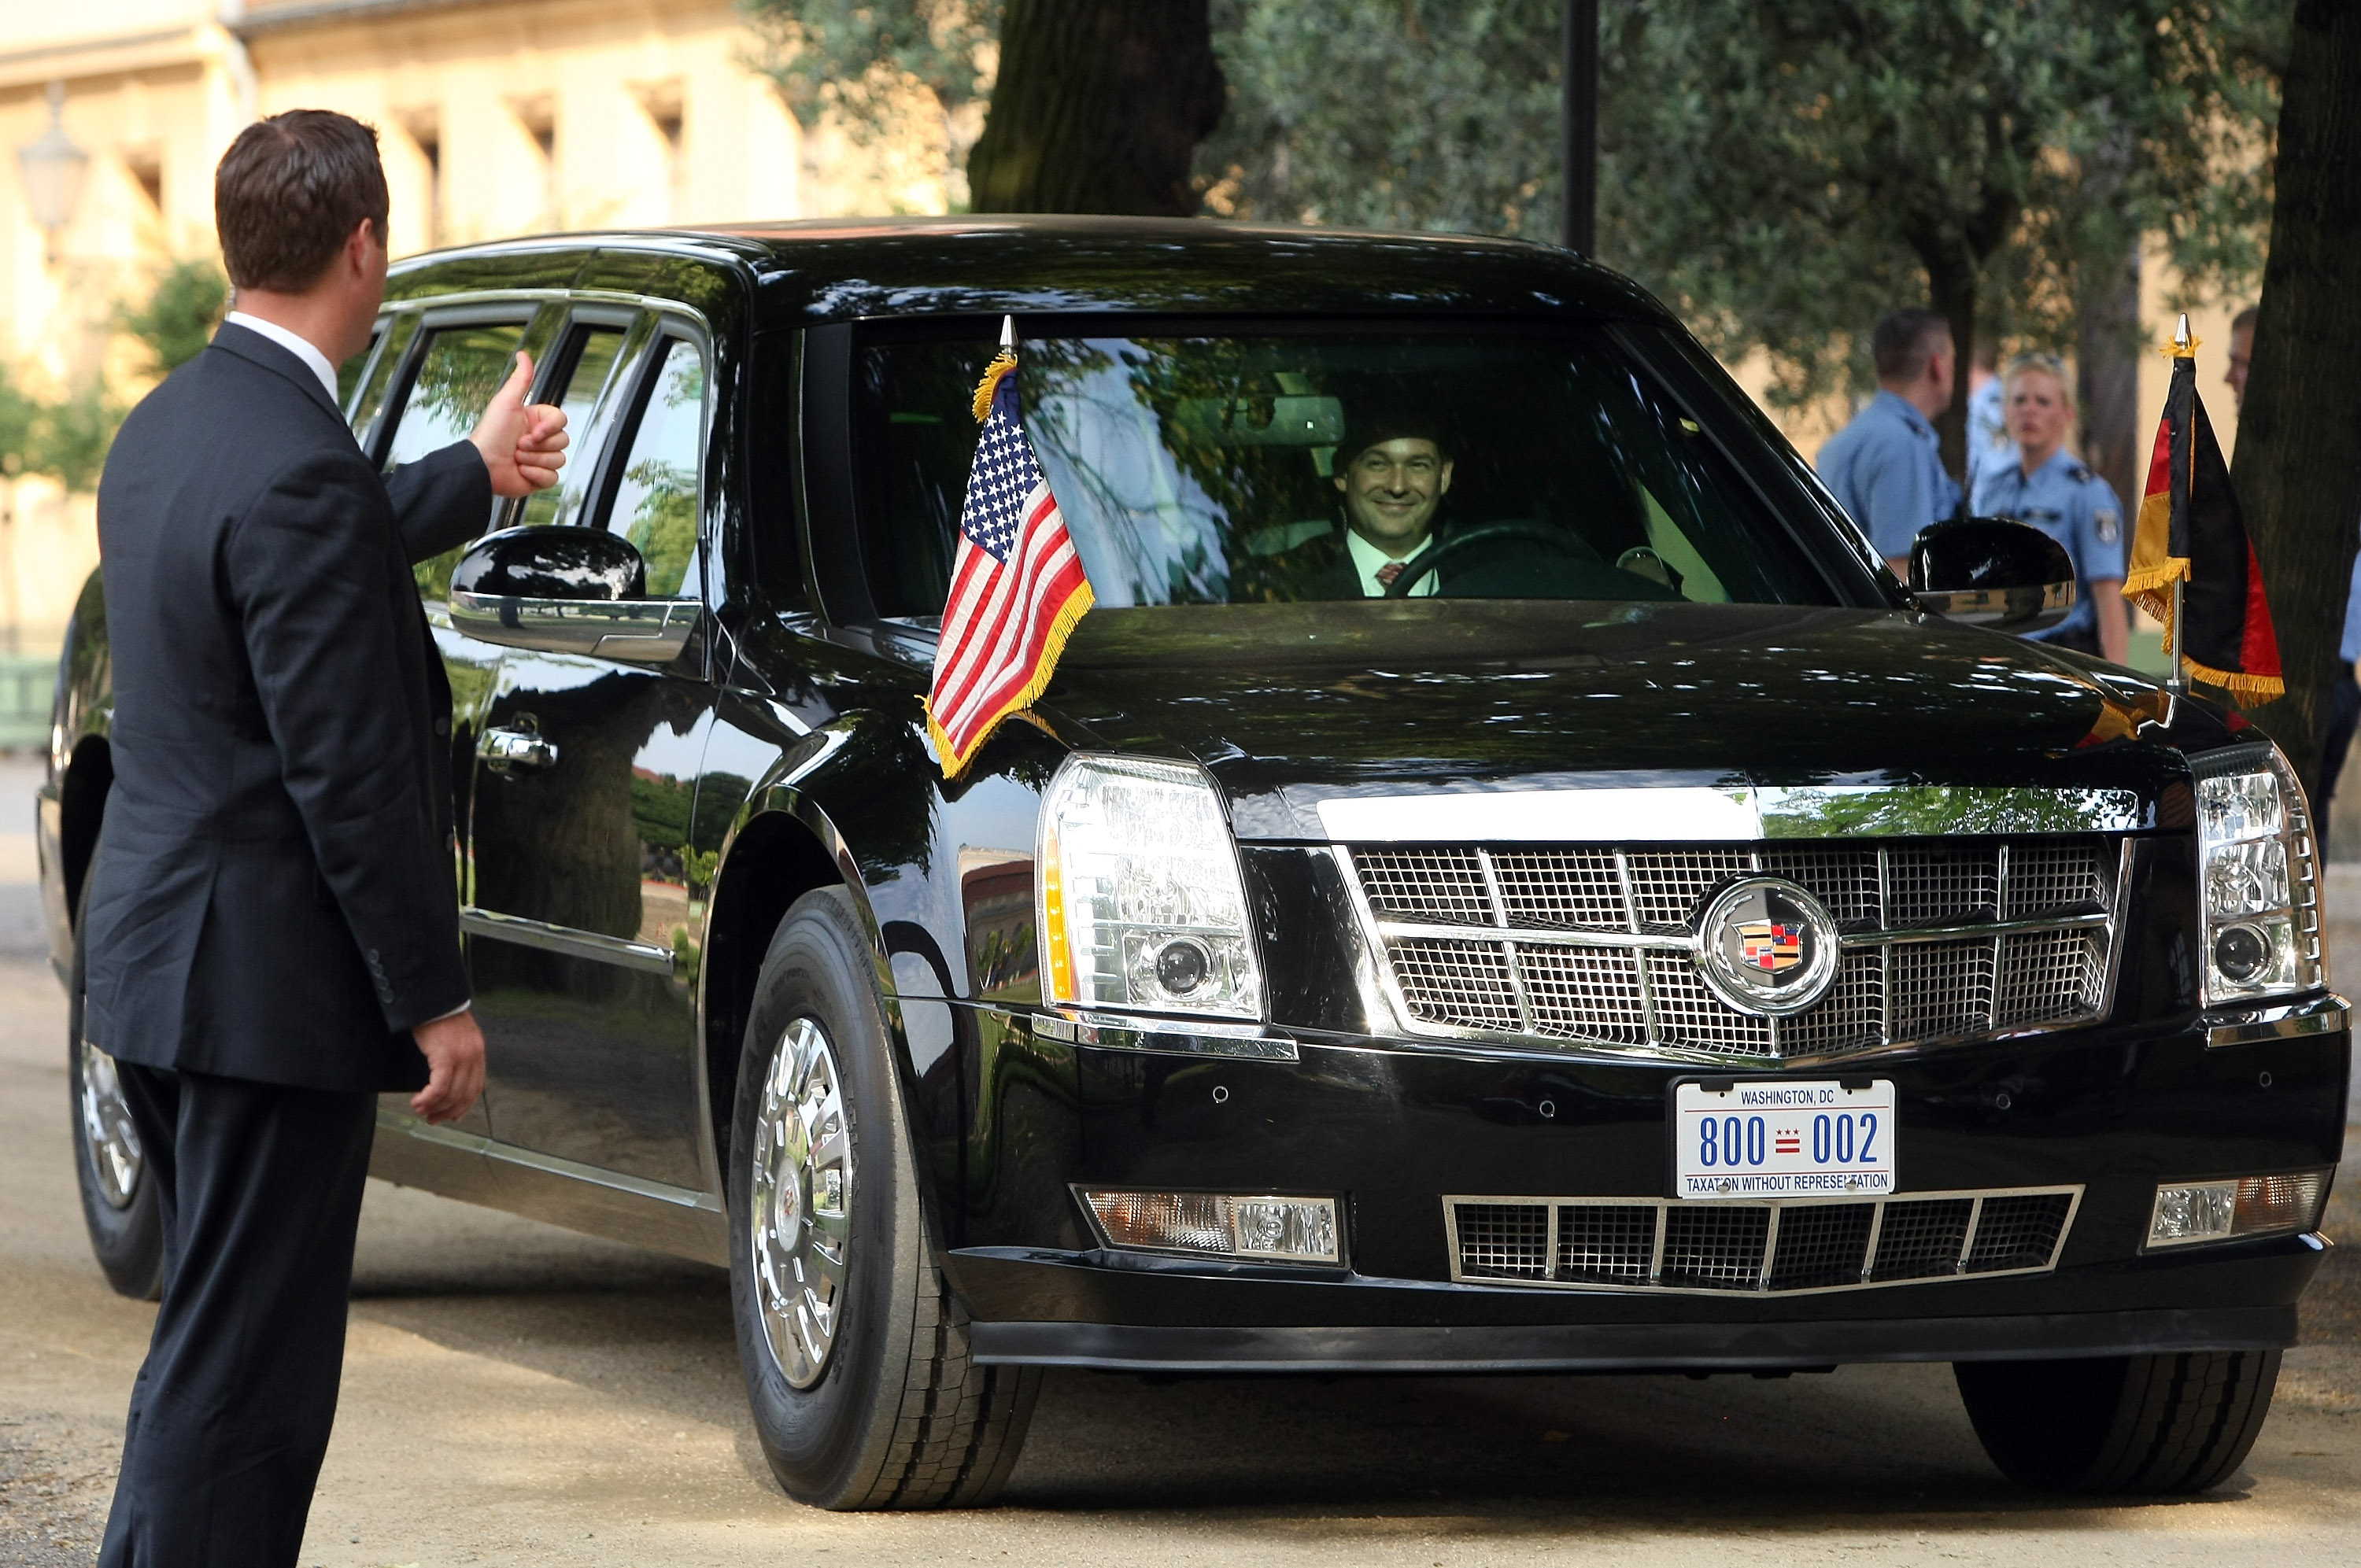 A security officer gives a thumbs-up to the driver of 'The Beast,' a modified Cadillac DTS that is the current U.S. presidential limousine, after U.S. President Barack Obama exited it for a dinner at the Orangerie at Schloss Charlottenburg palace on June 19, 2013 in Berlin.